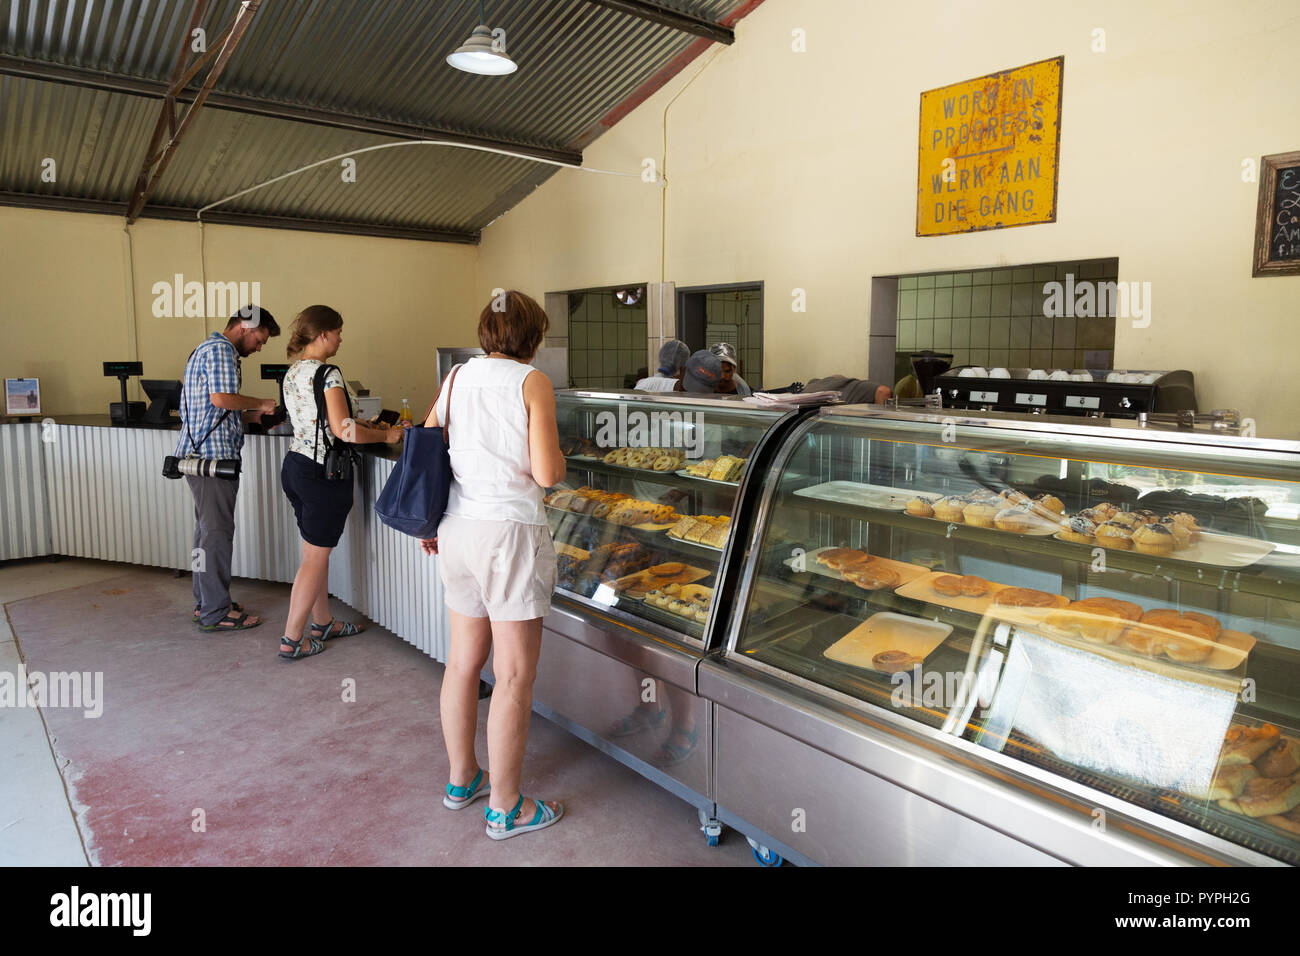 Namibia tourists queuing for food and drink, Mcgregor's bakery, Solitaire, Namibia Africa - Stock Image